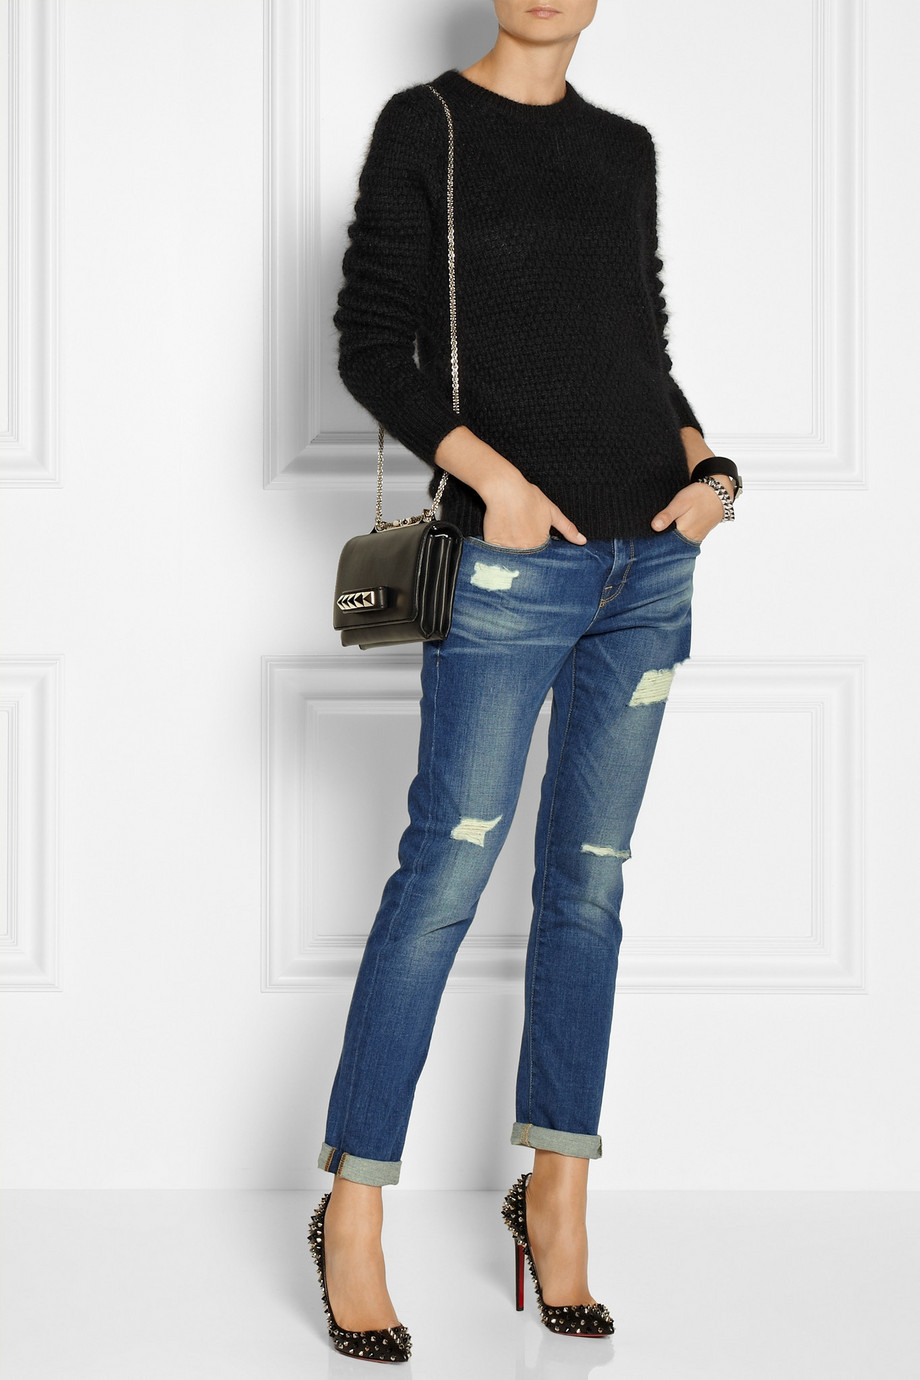 Frame Denim  outfit